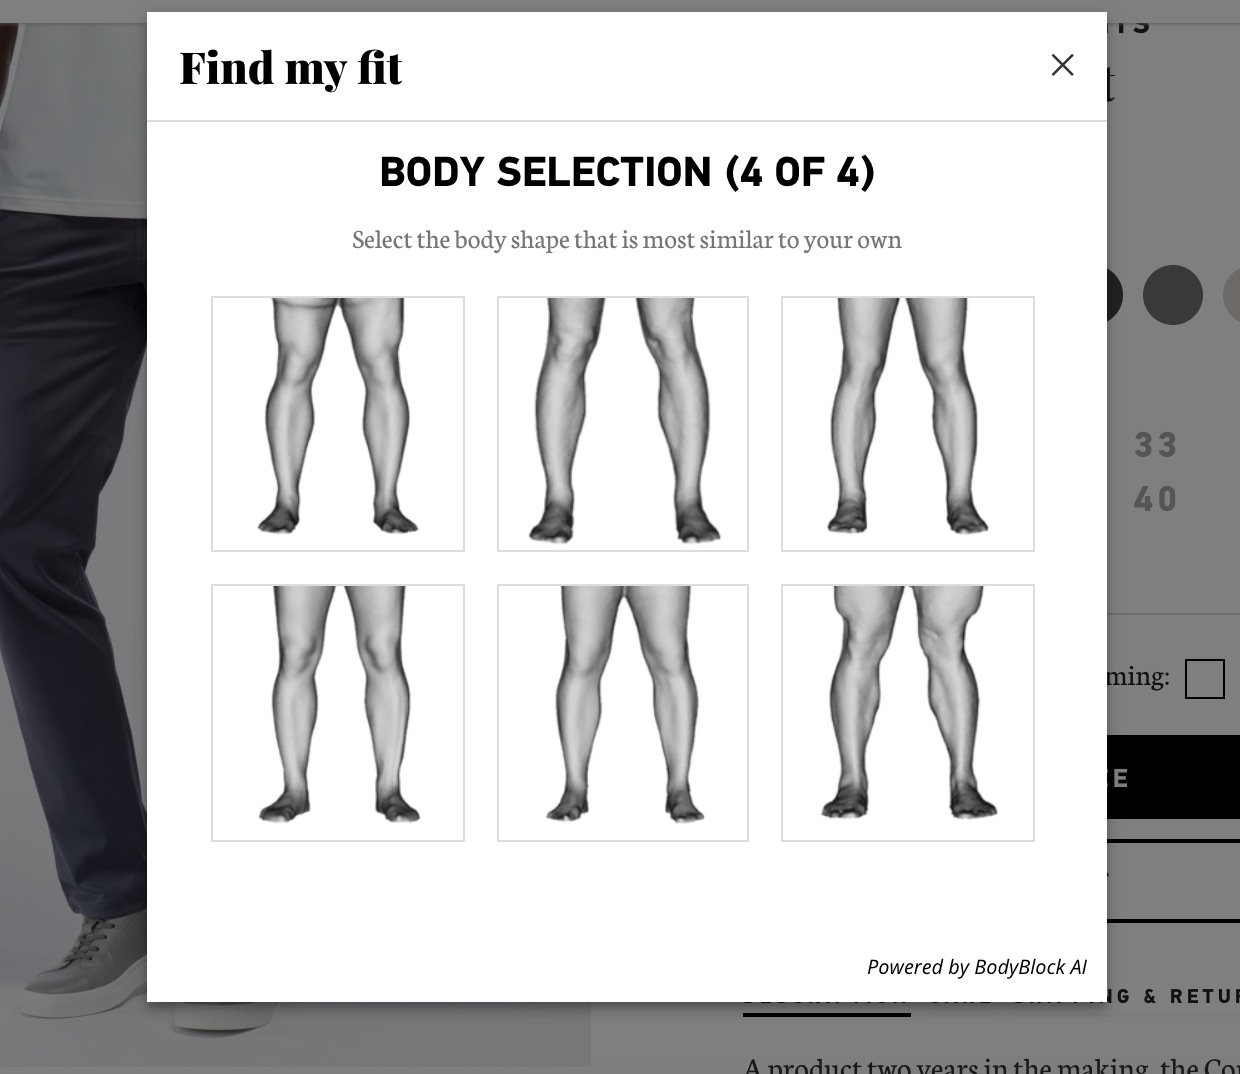 BodyBlock AI Find My Fit